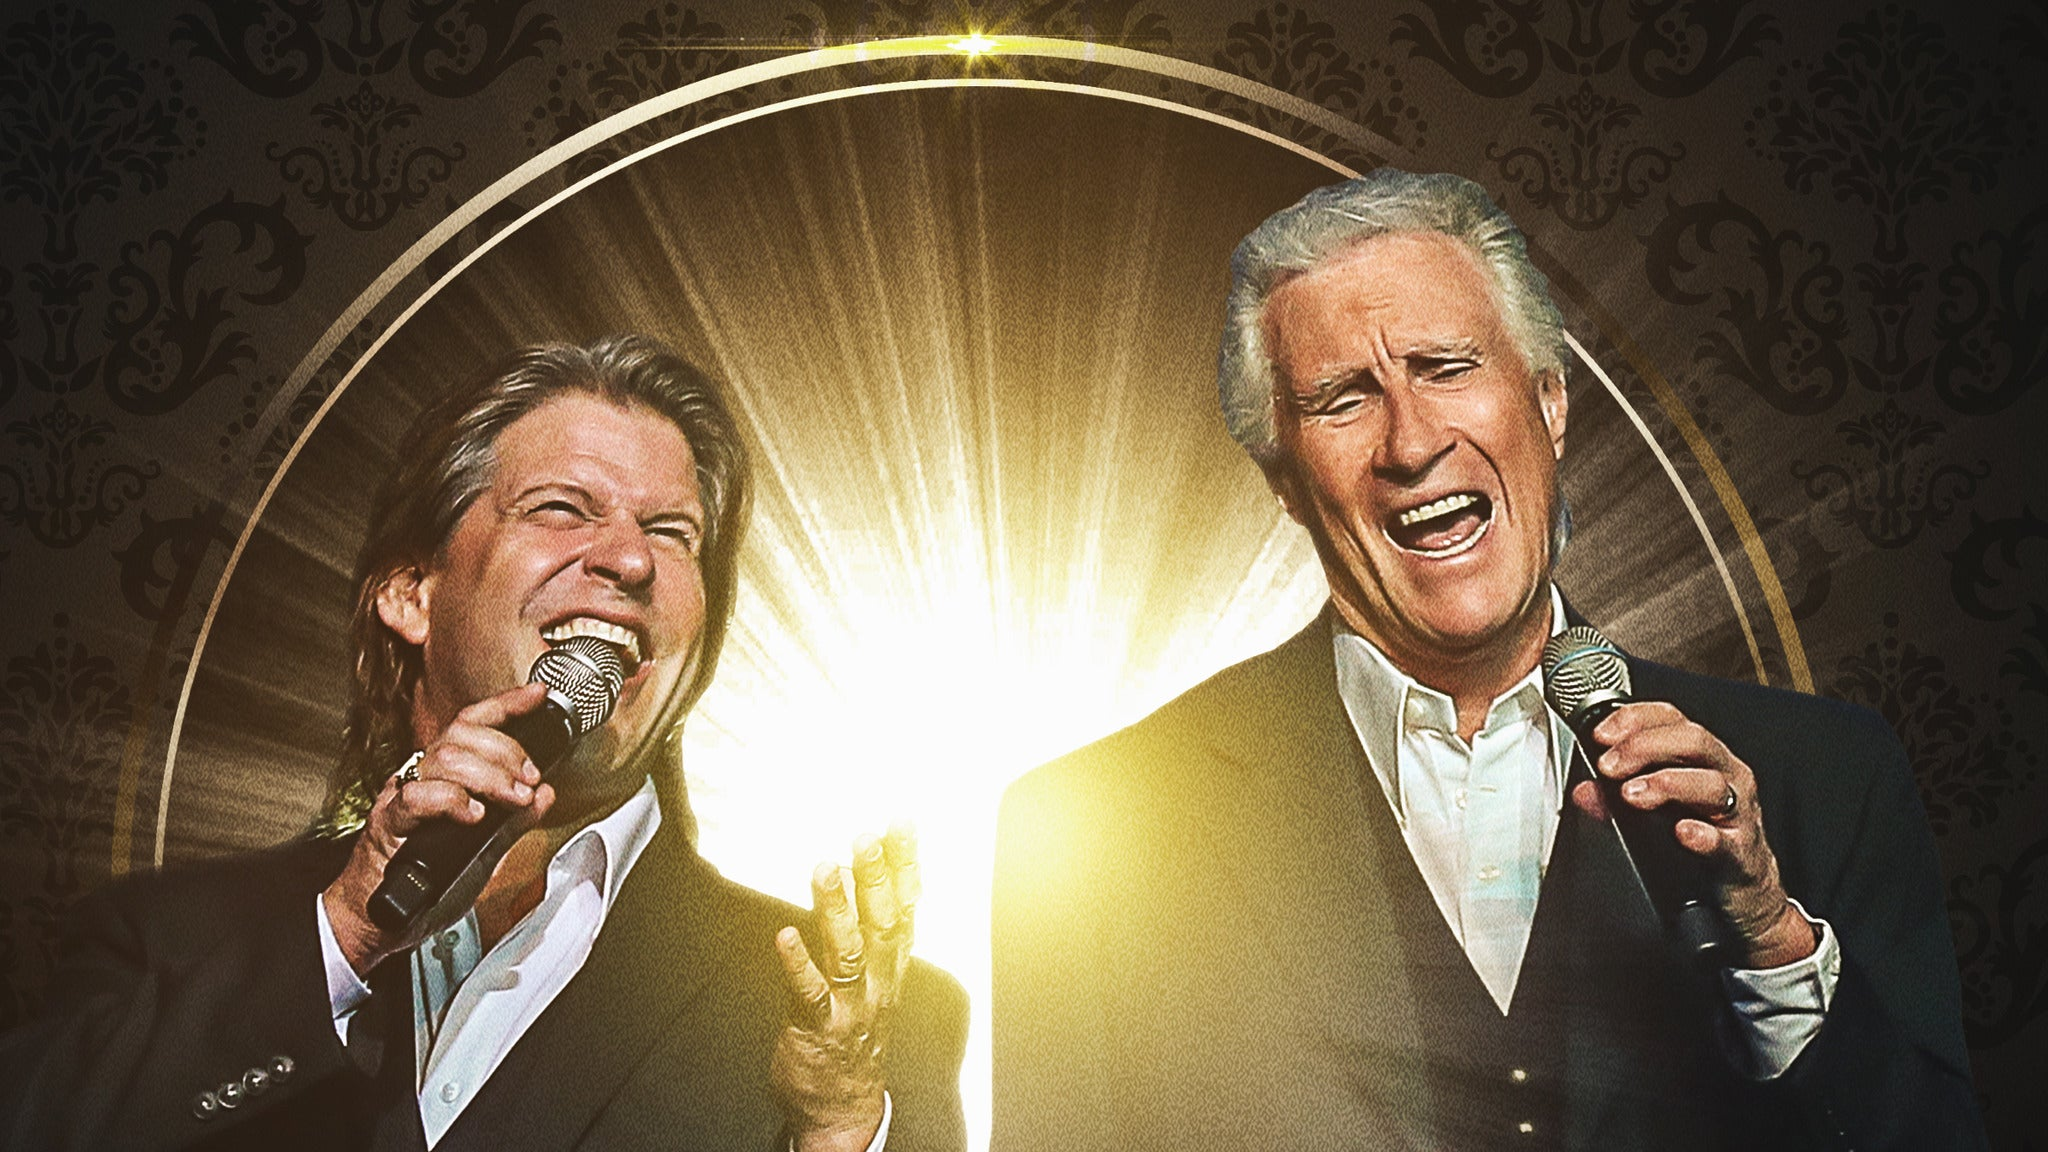 Righteous Brothers at City National Civic